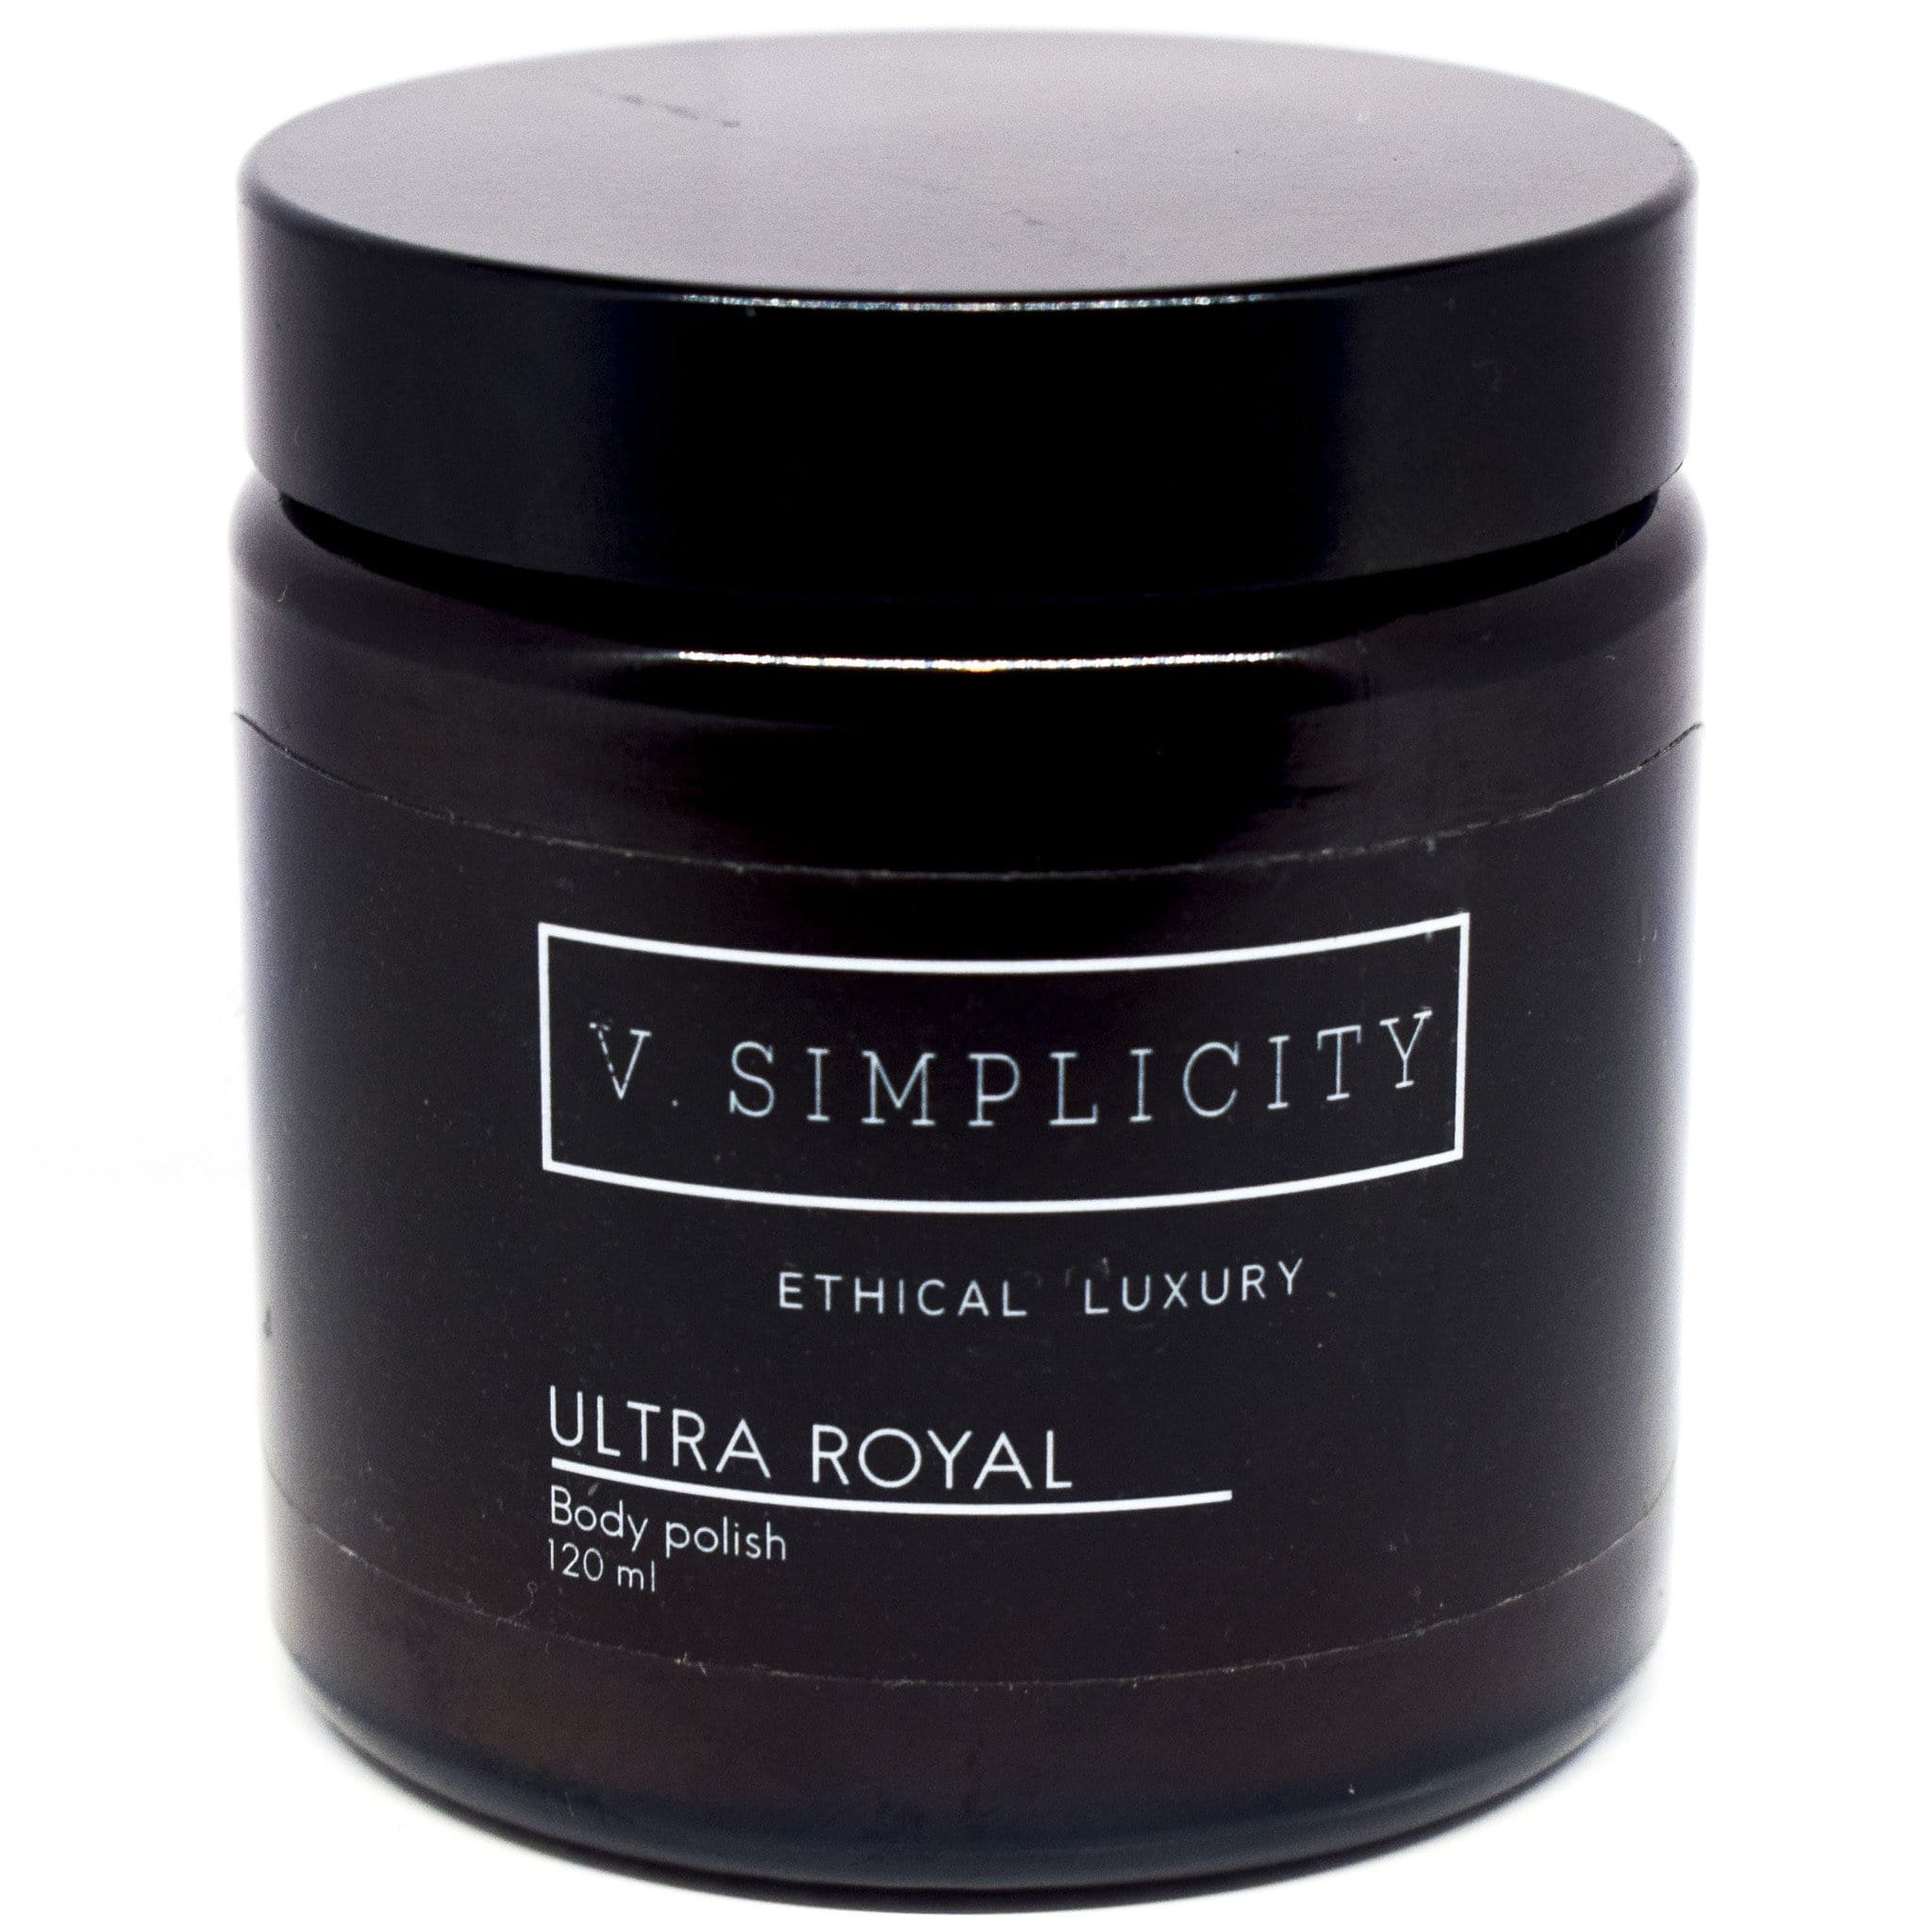 Ultra Royal Body Polish